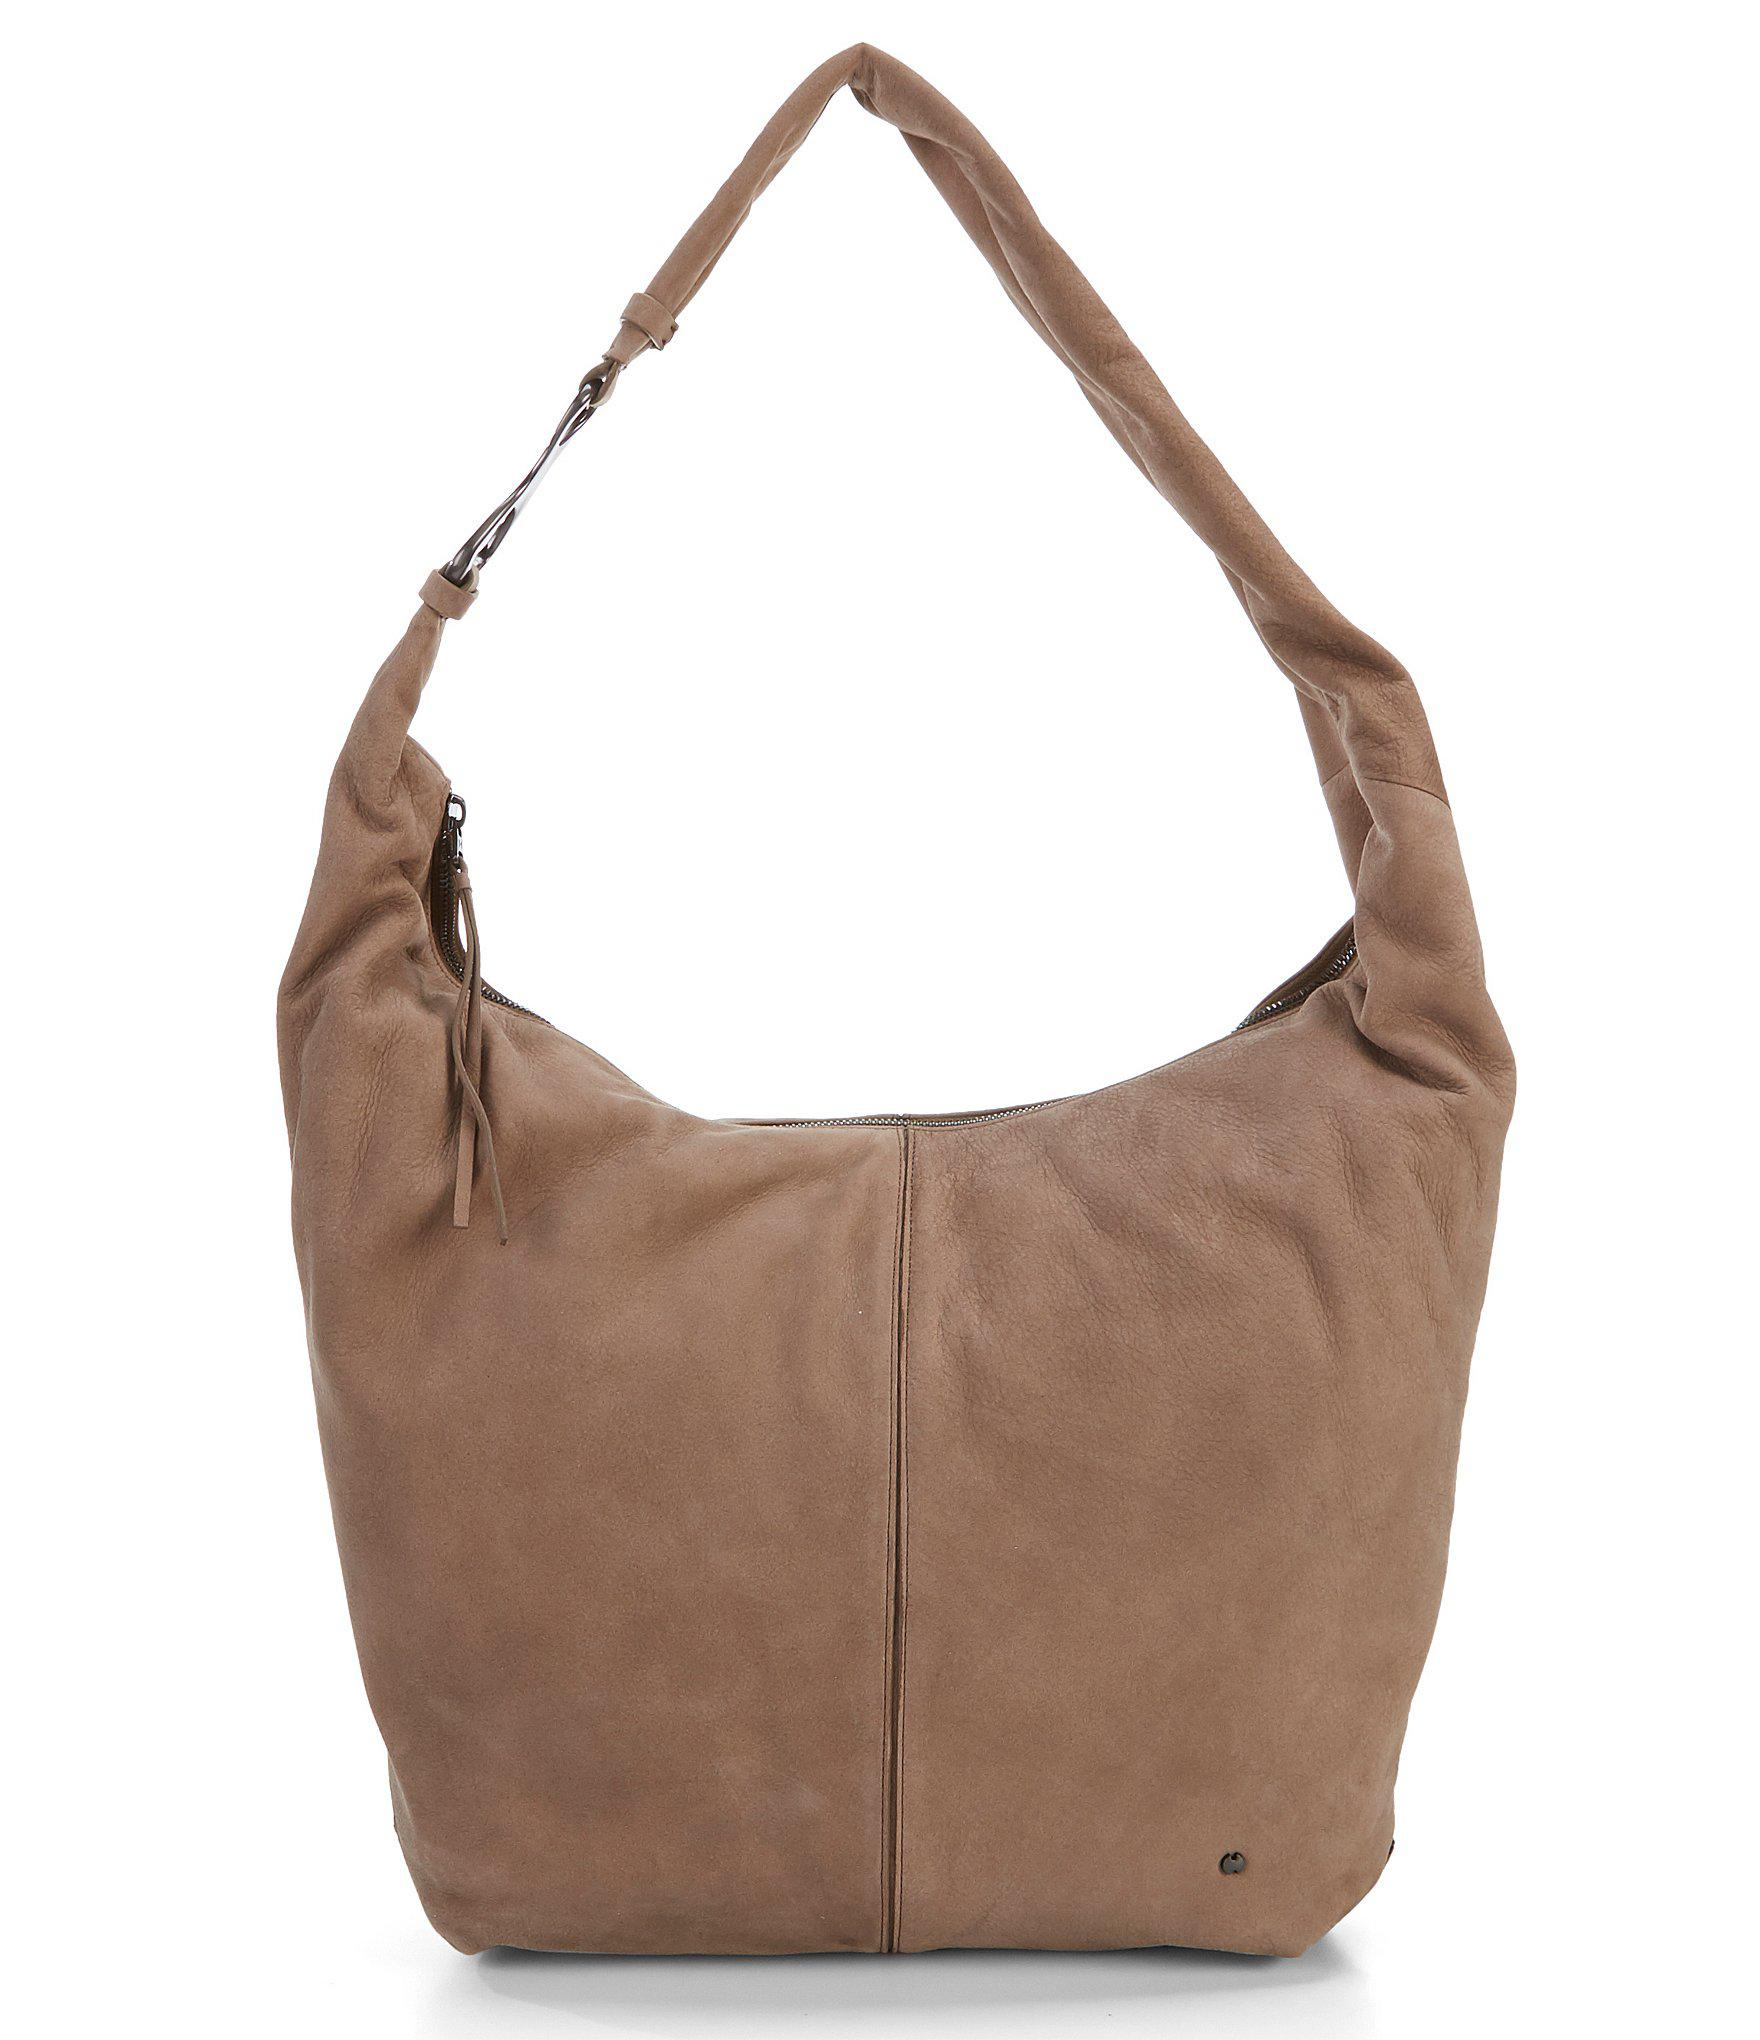 6ad46fbeedb5 Lyst - Halston Heritage Tina Large Slouchy Hobo Bag in Brown